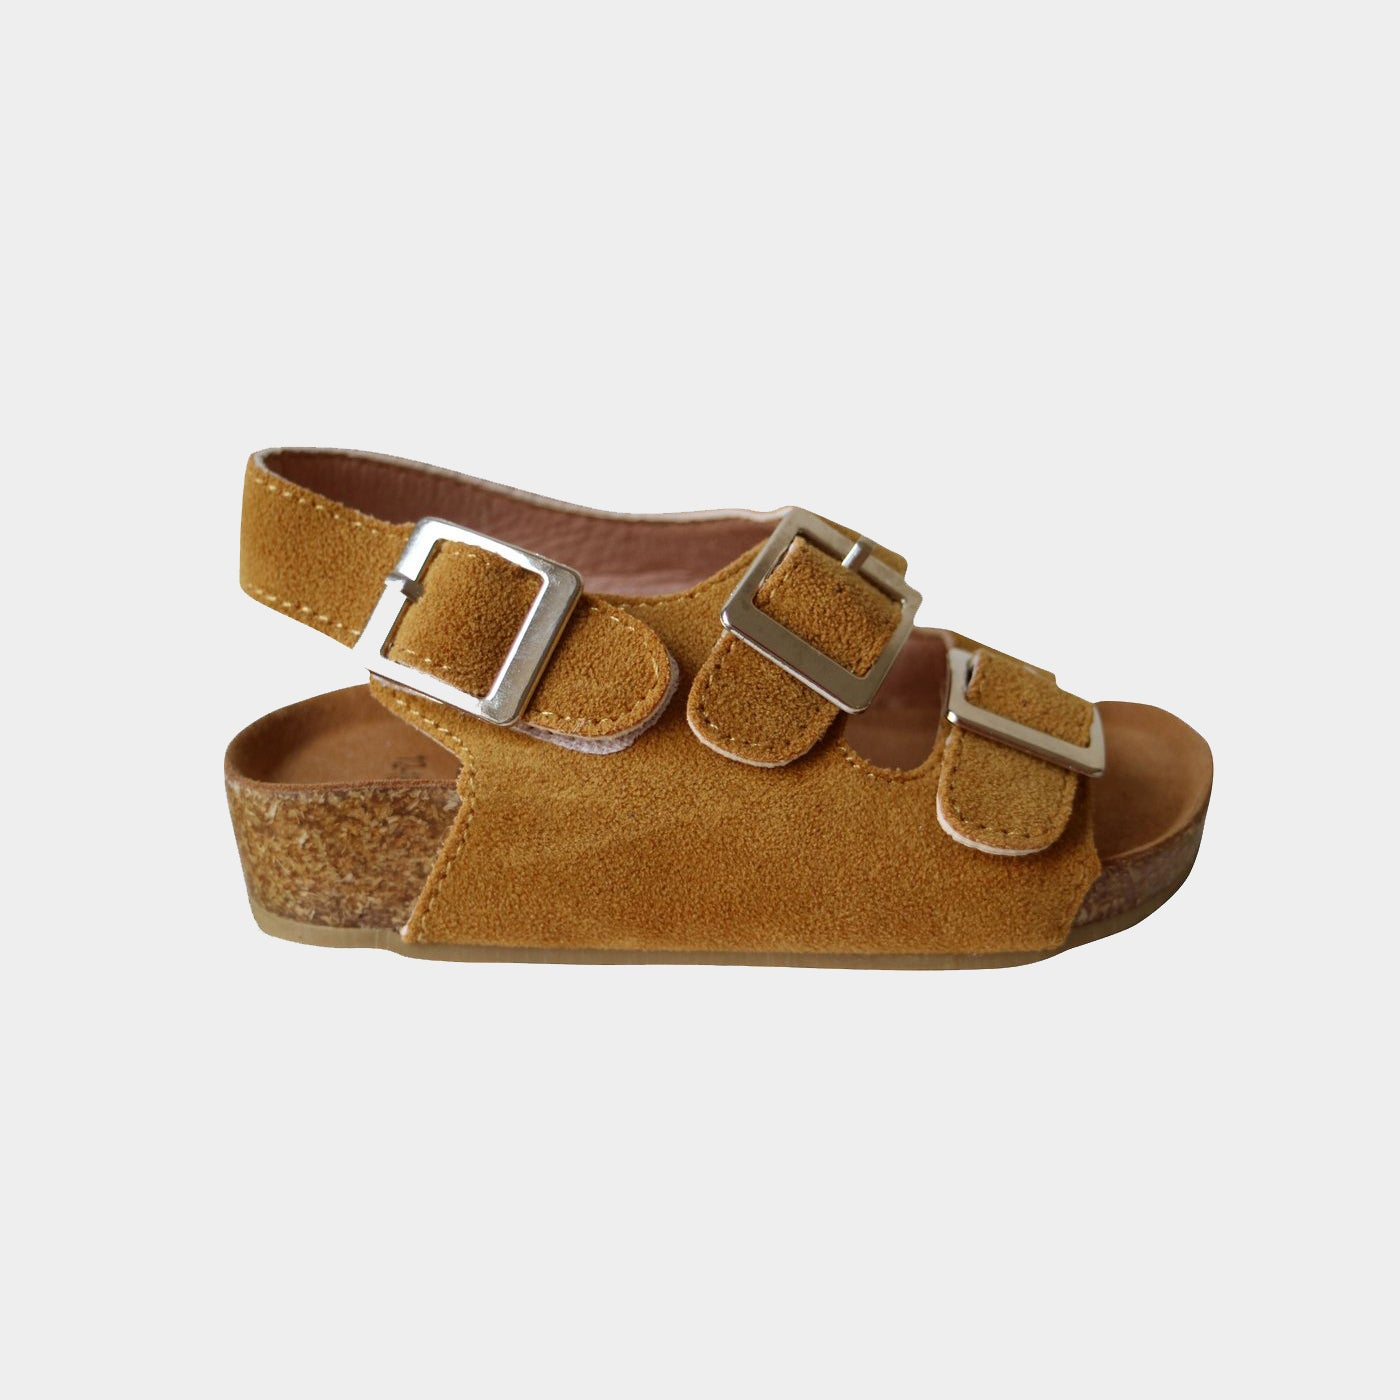 Image of Vacay Sandals Mustard